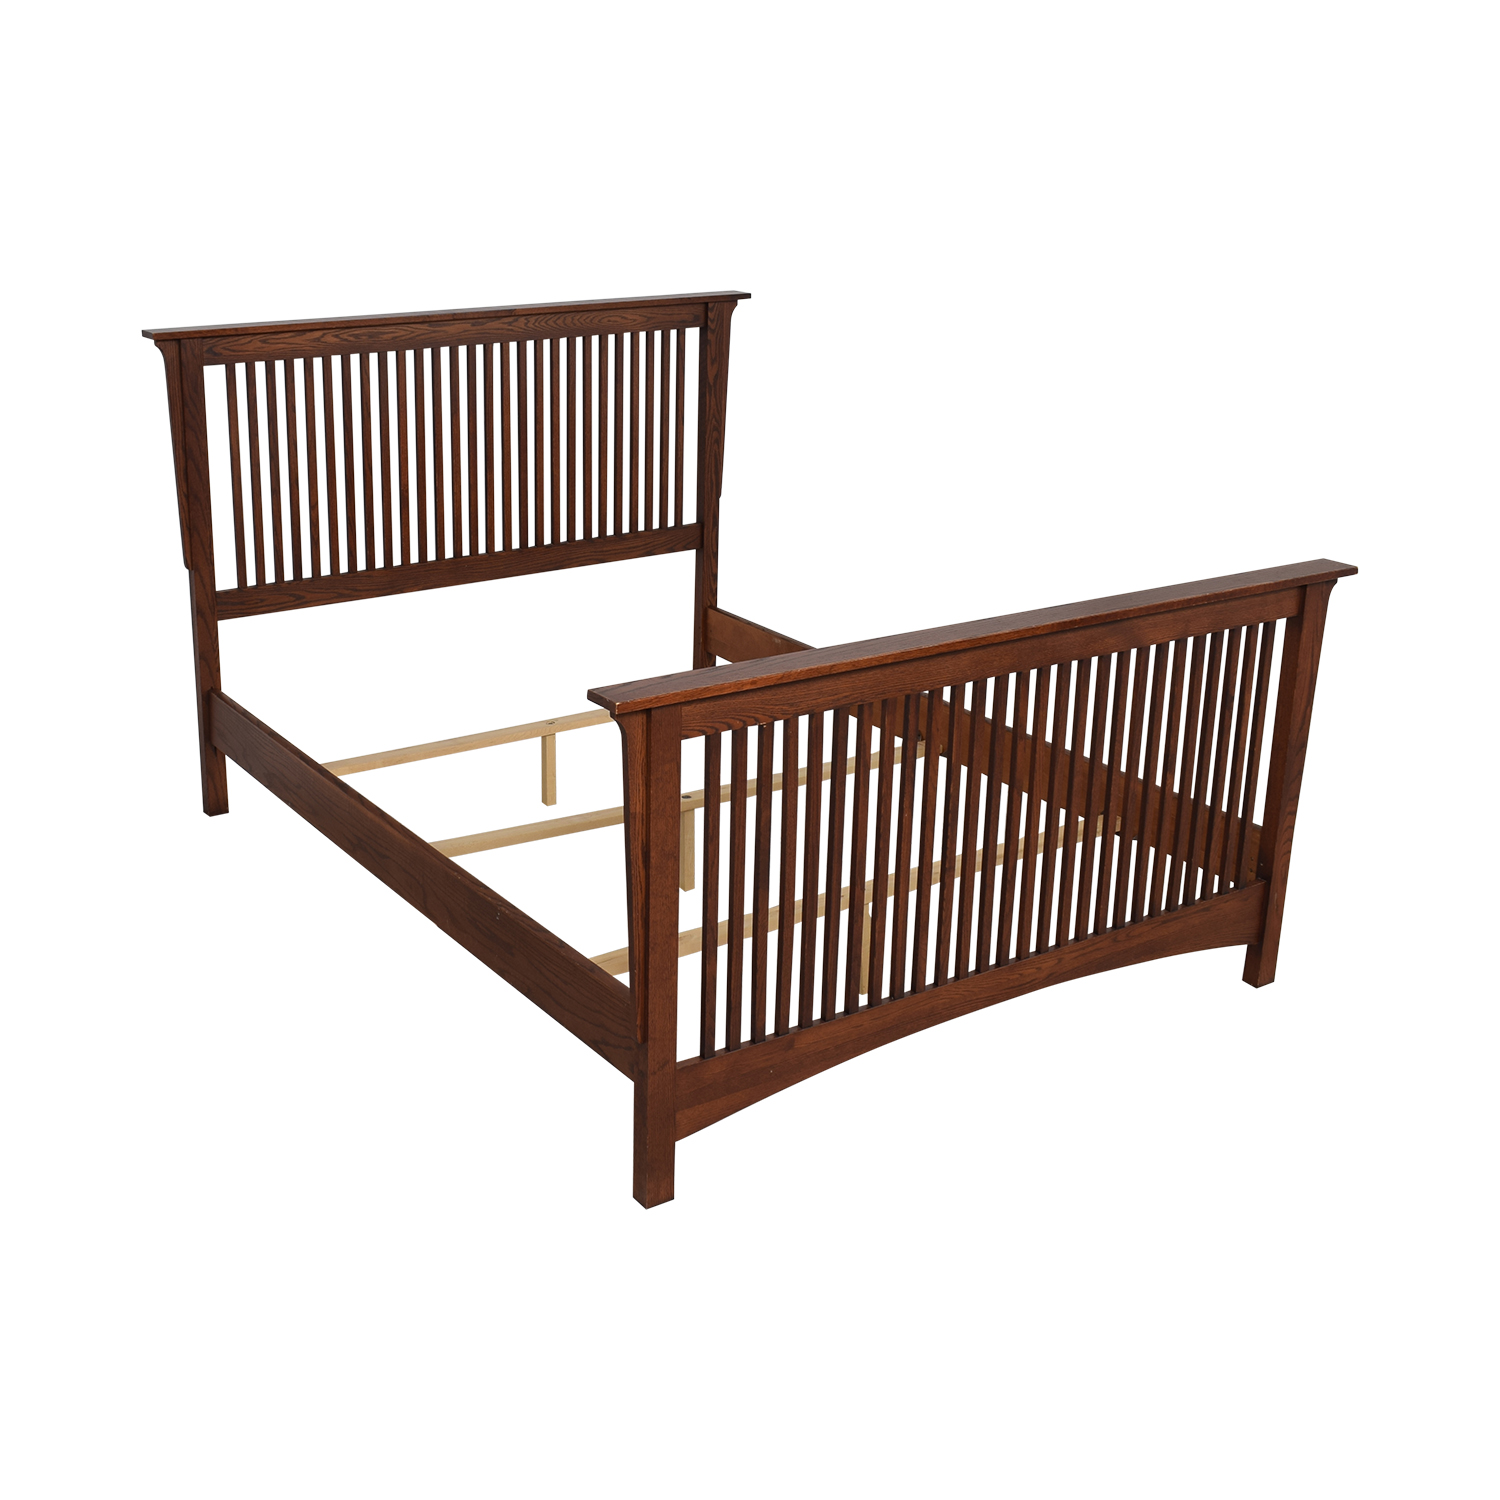 Thomasville Thomasville Queen Spindle Bed Frame Beds